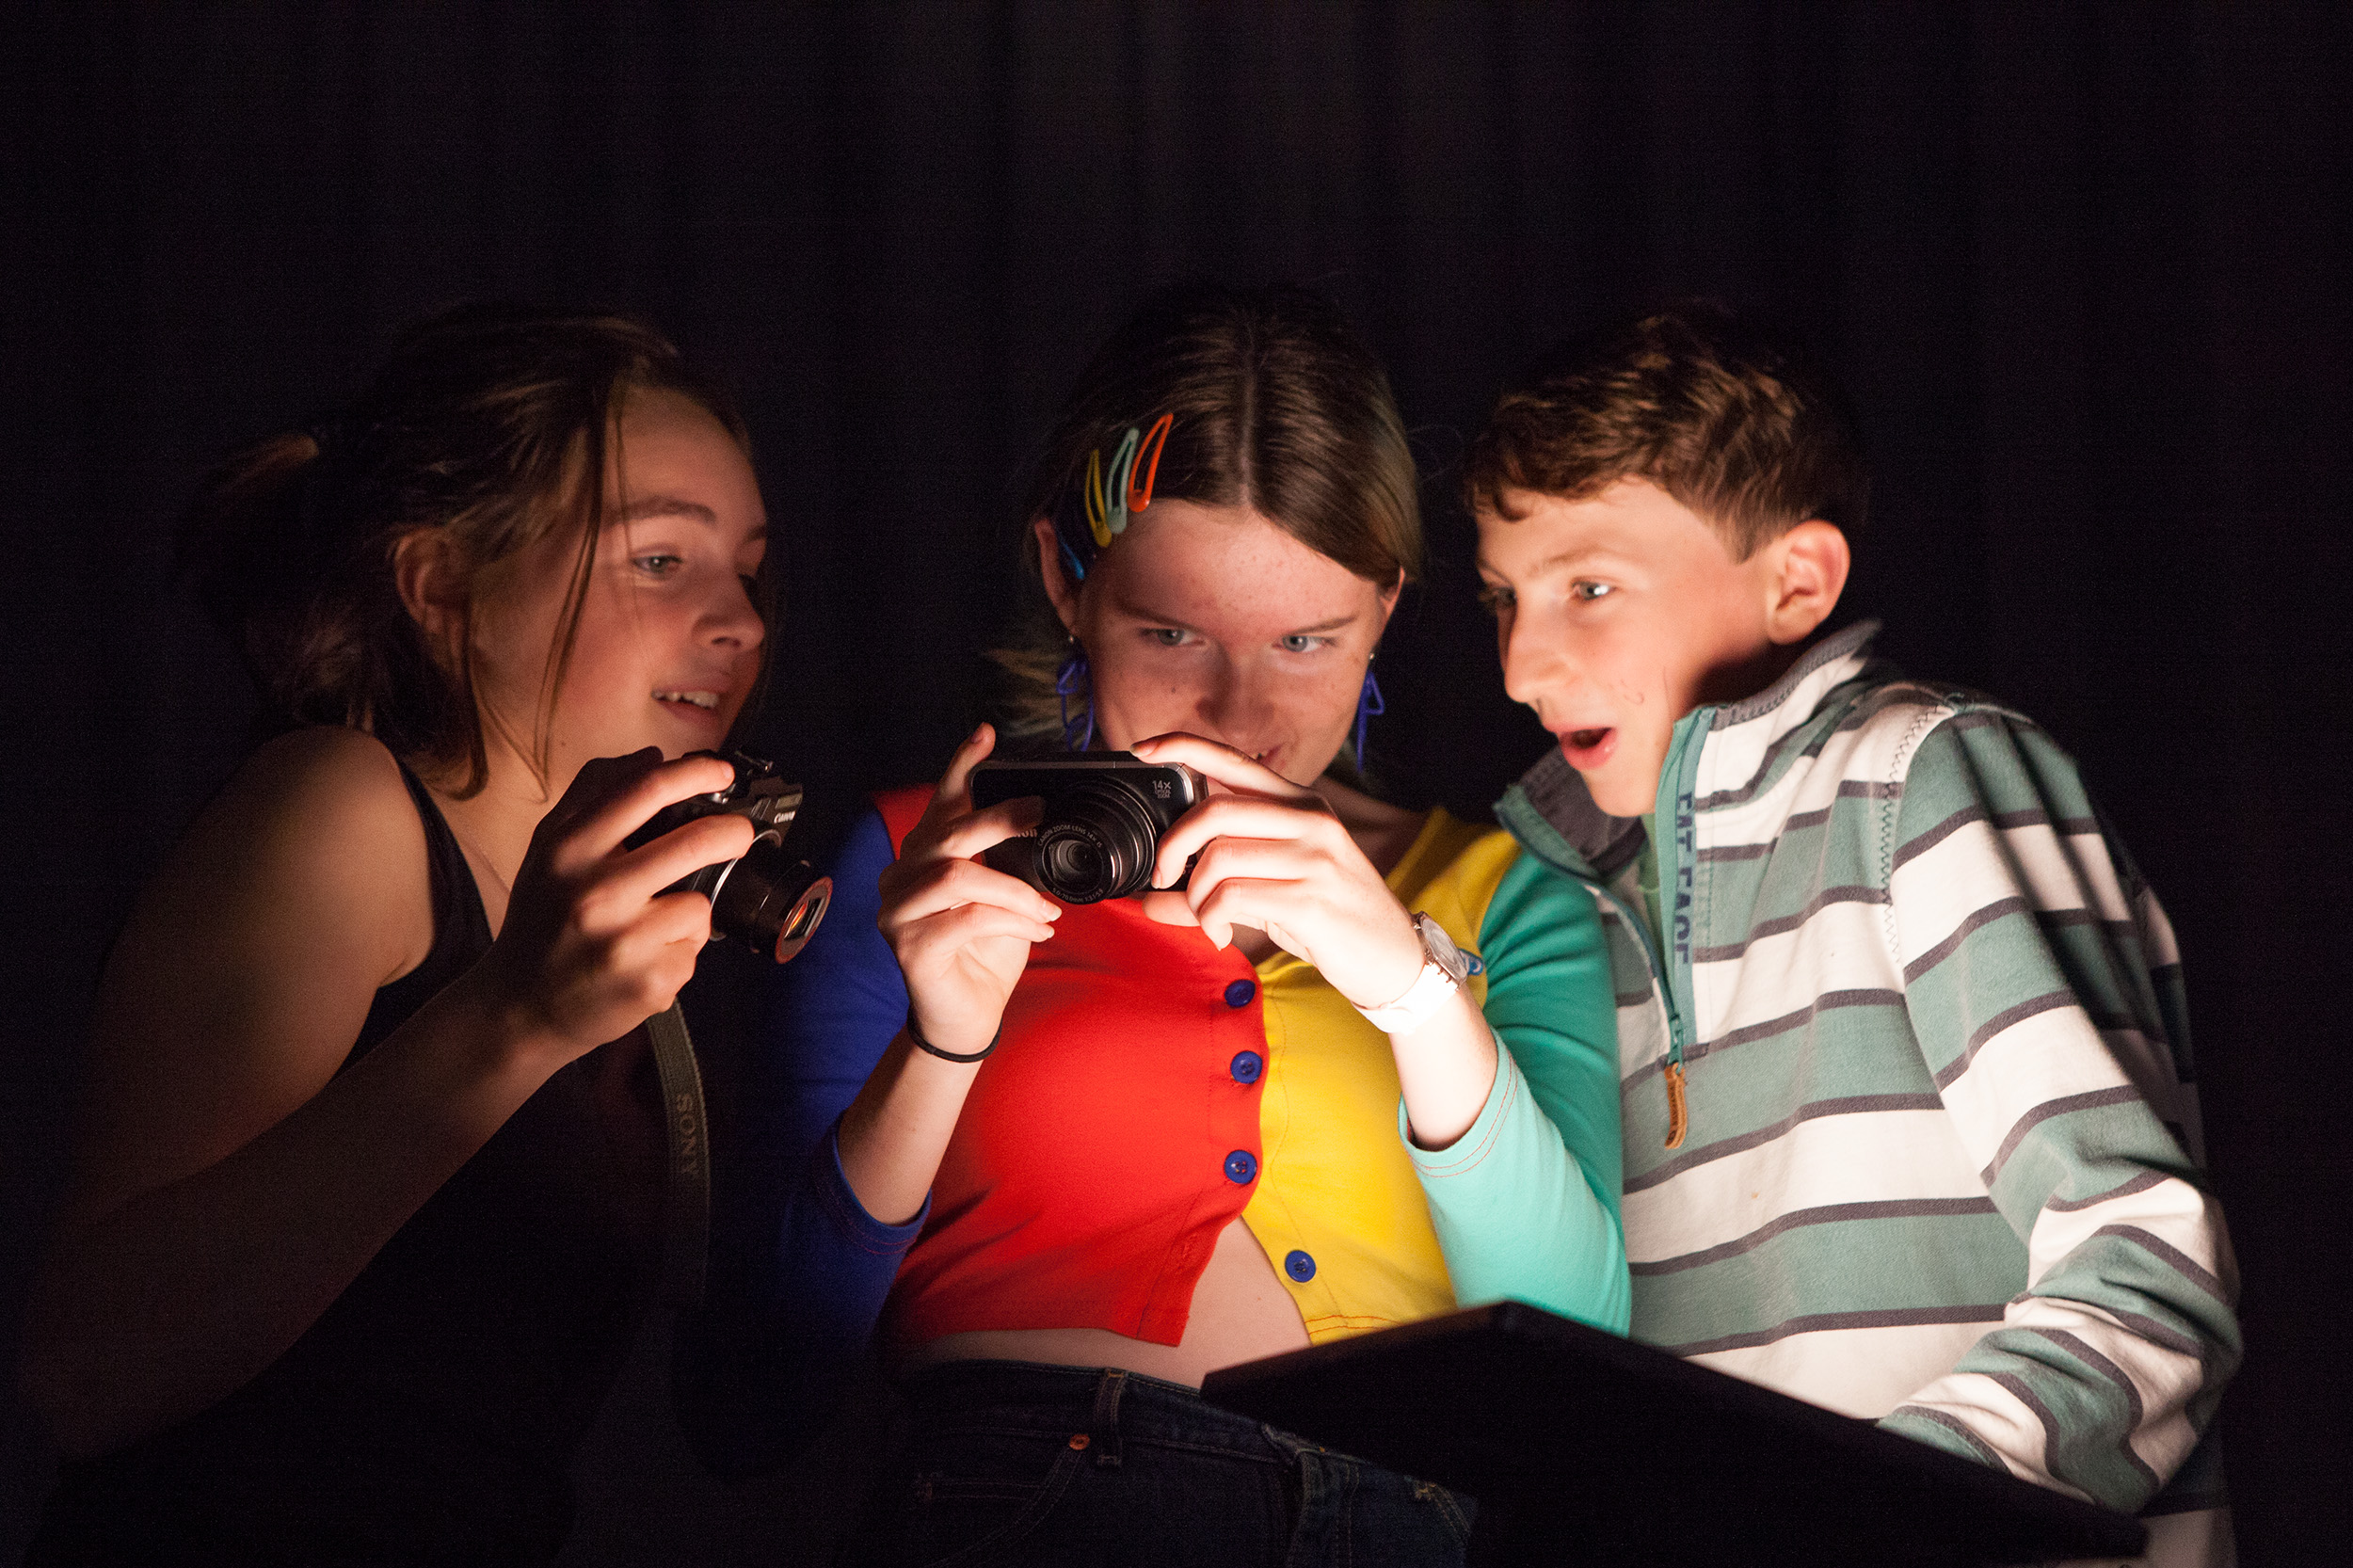 Photofantastic Photography for Teenagers course mentored by Karoki Lewis